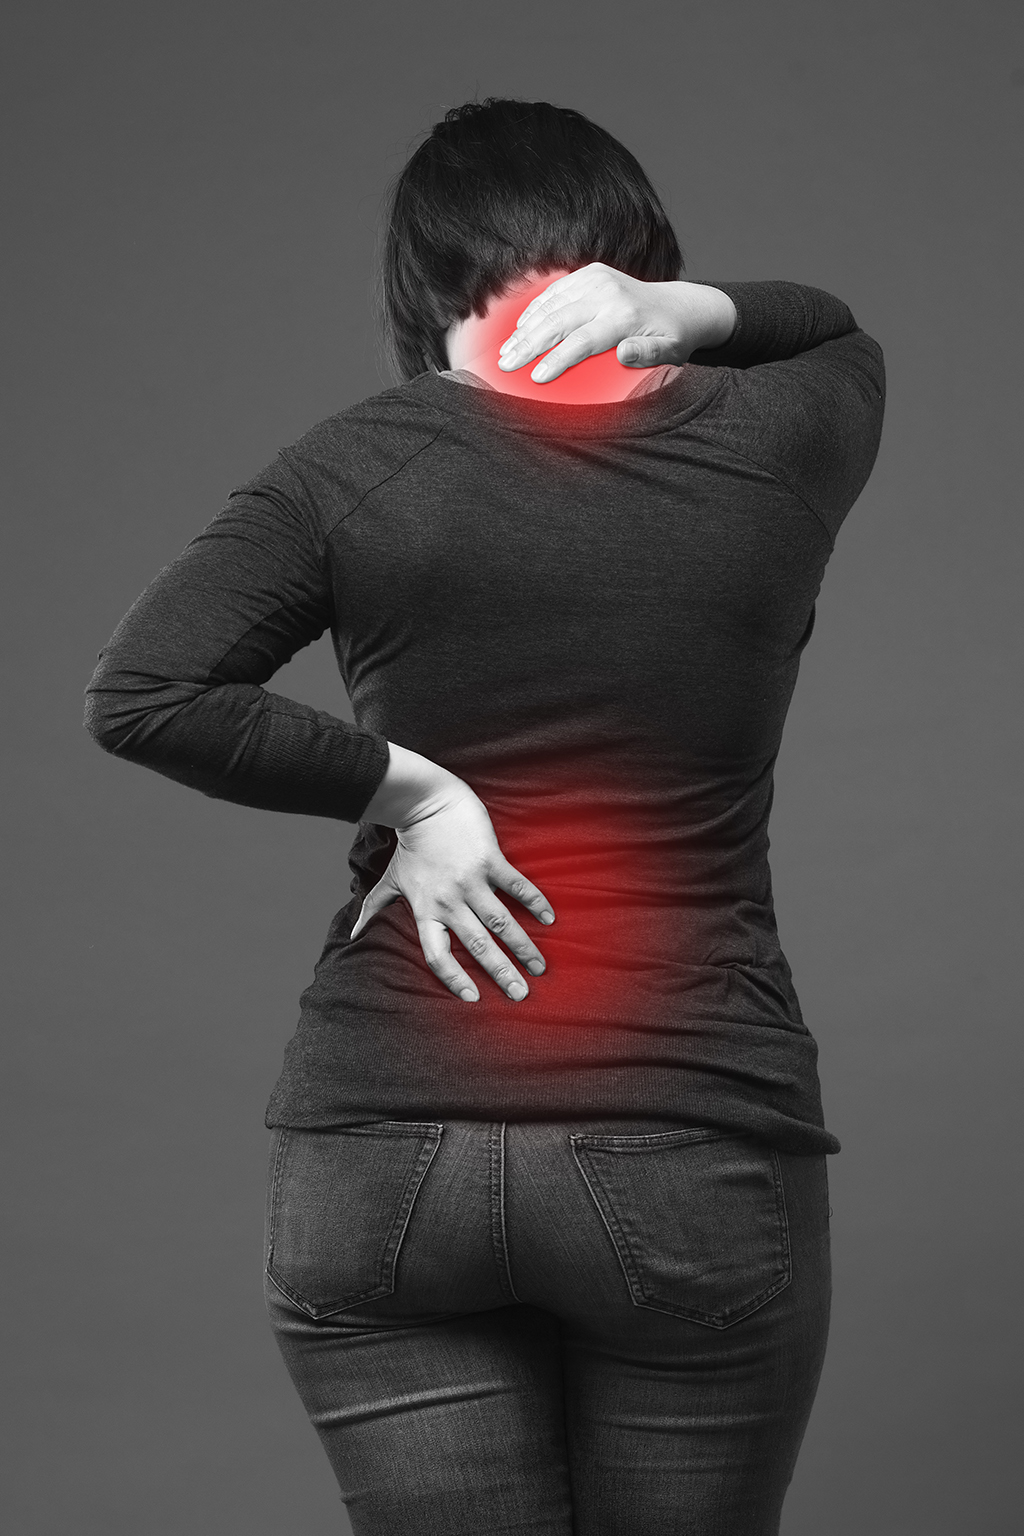 Back pain, woman with backache on gray background, black and white photo with red spots